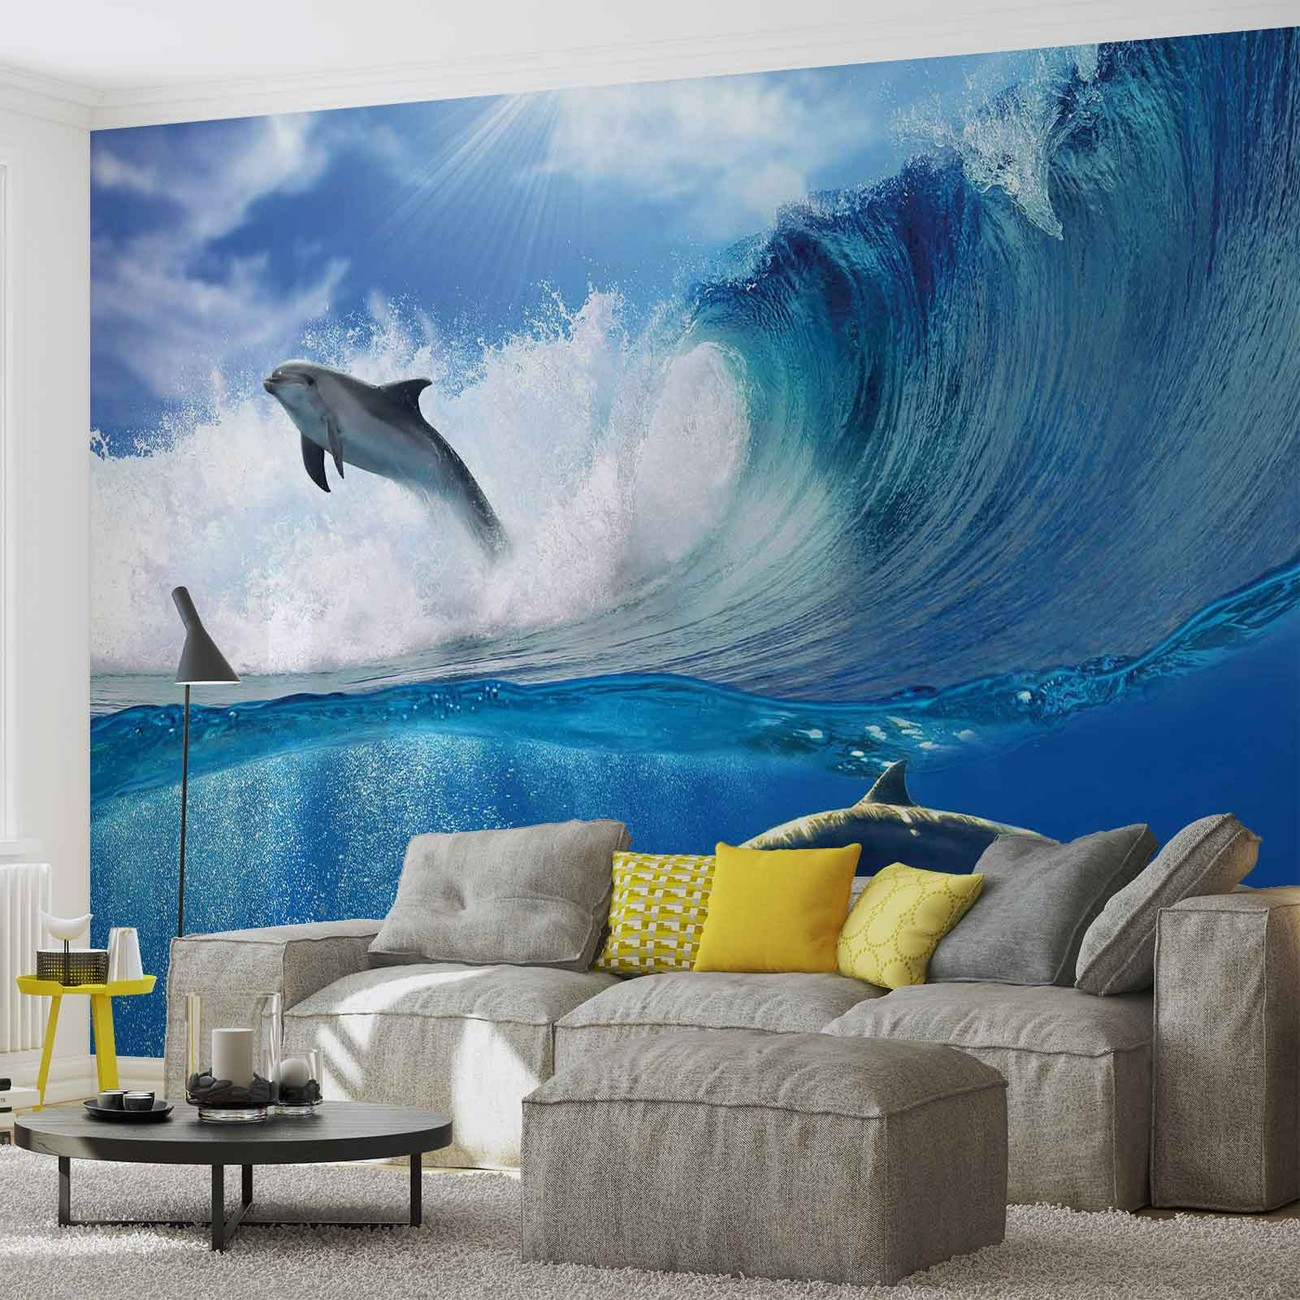 Dolphins sea wave nature wall paper mural buy at europosters for Dolphins paradise wall mural